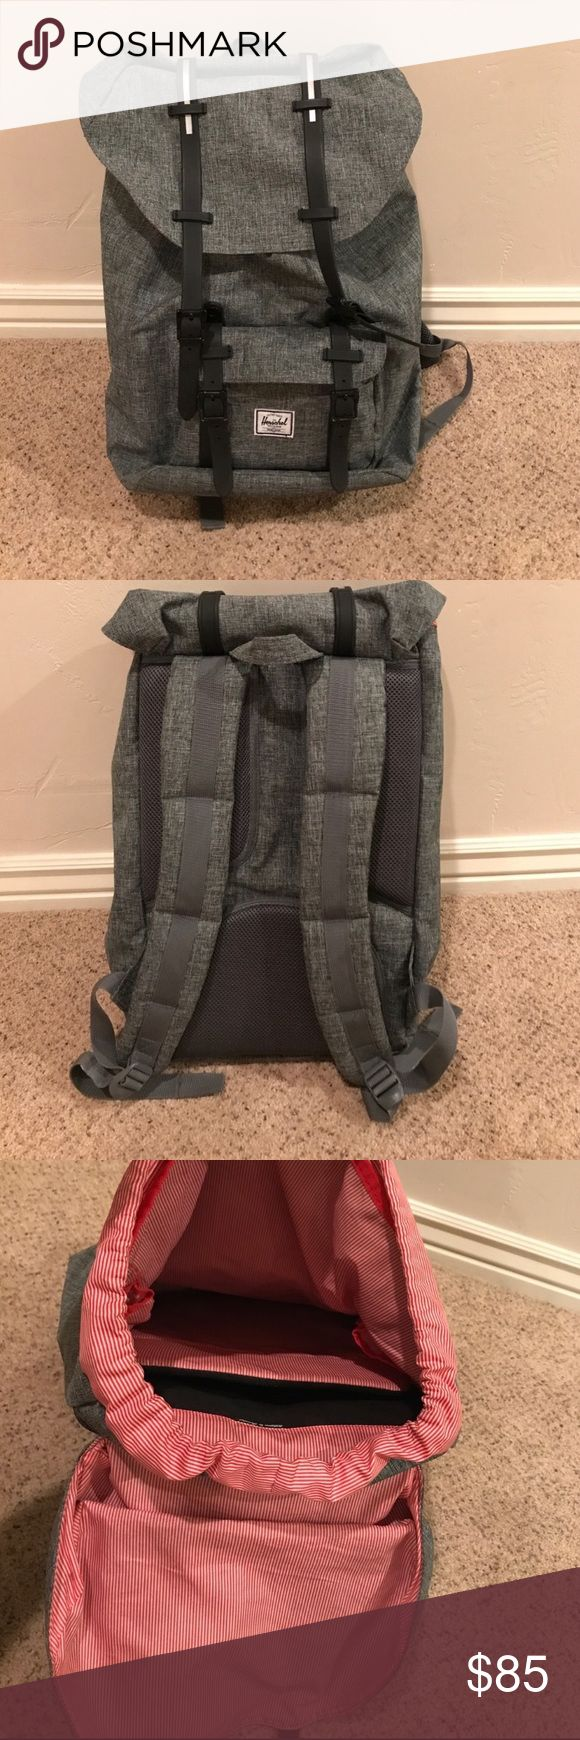 NWOT Herschel backpack Gently gently used!! Best backpack ever Herschel Supply Company Bags Backpacks